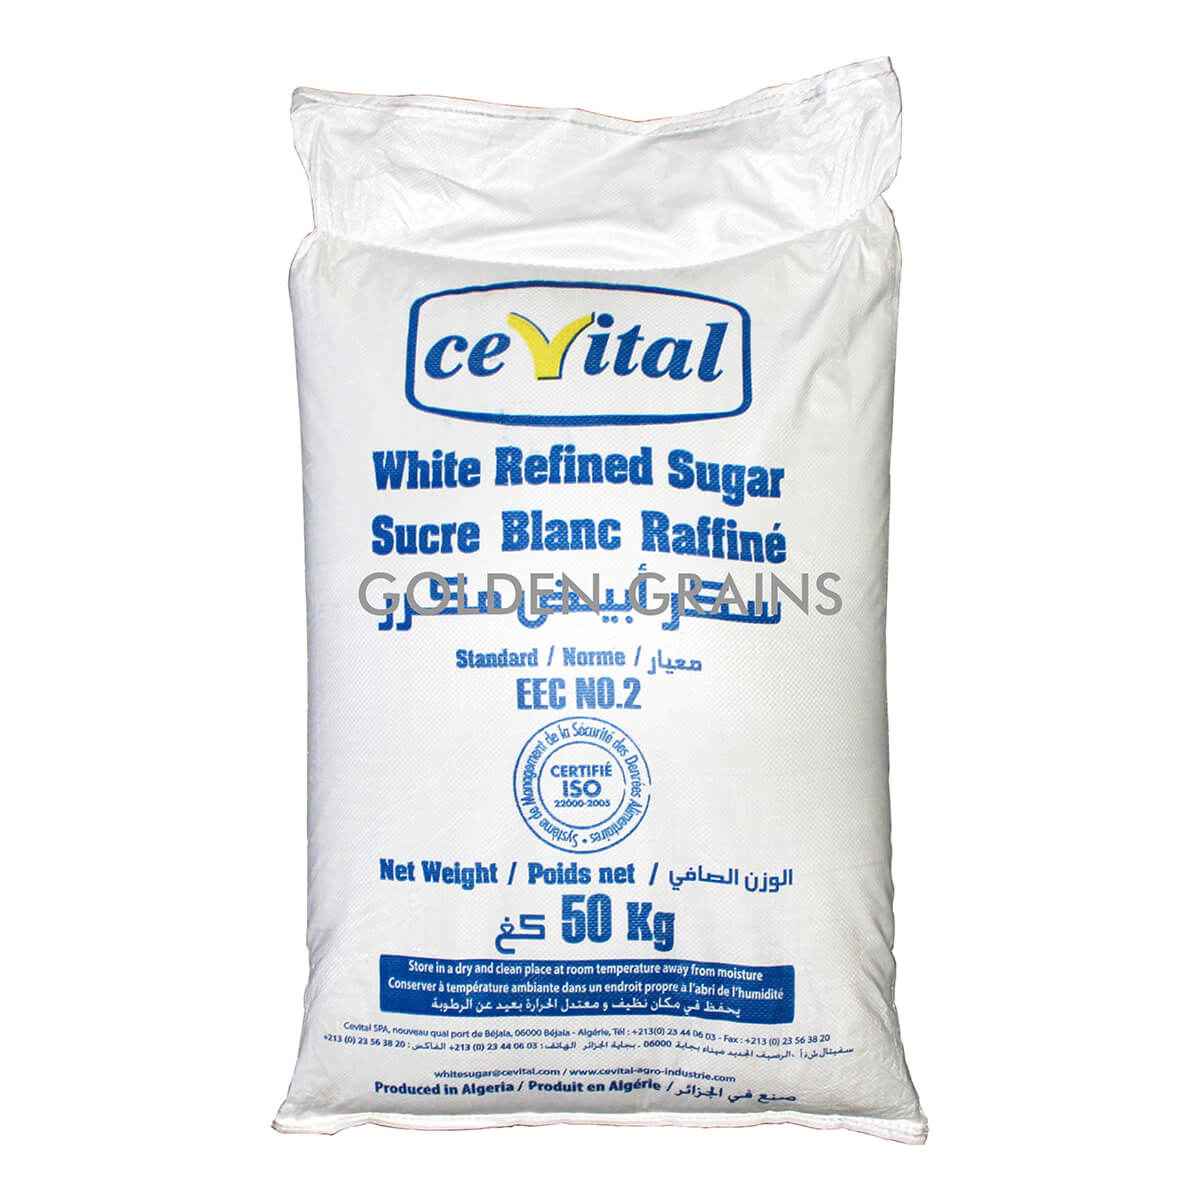 Golden Grains - Cevital - Sugar Bag - Front.jpg